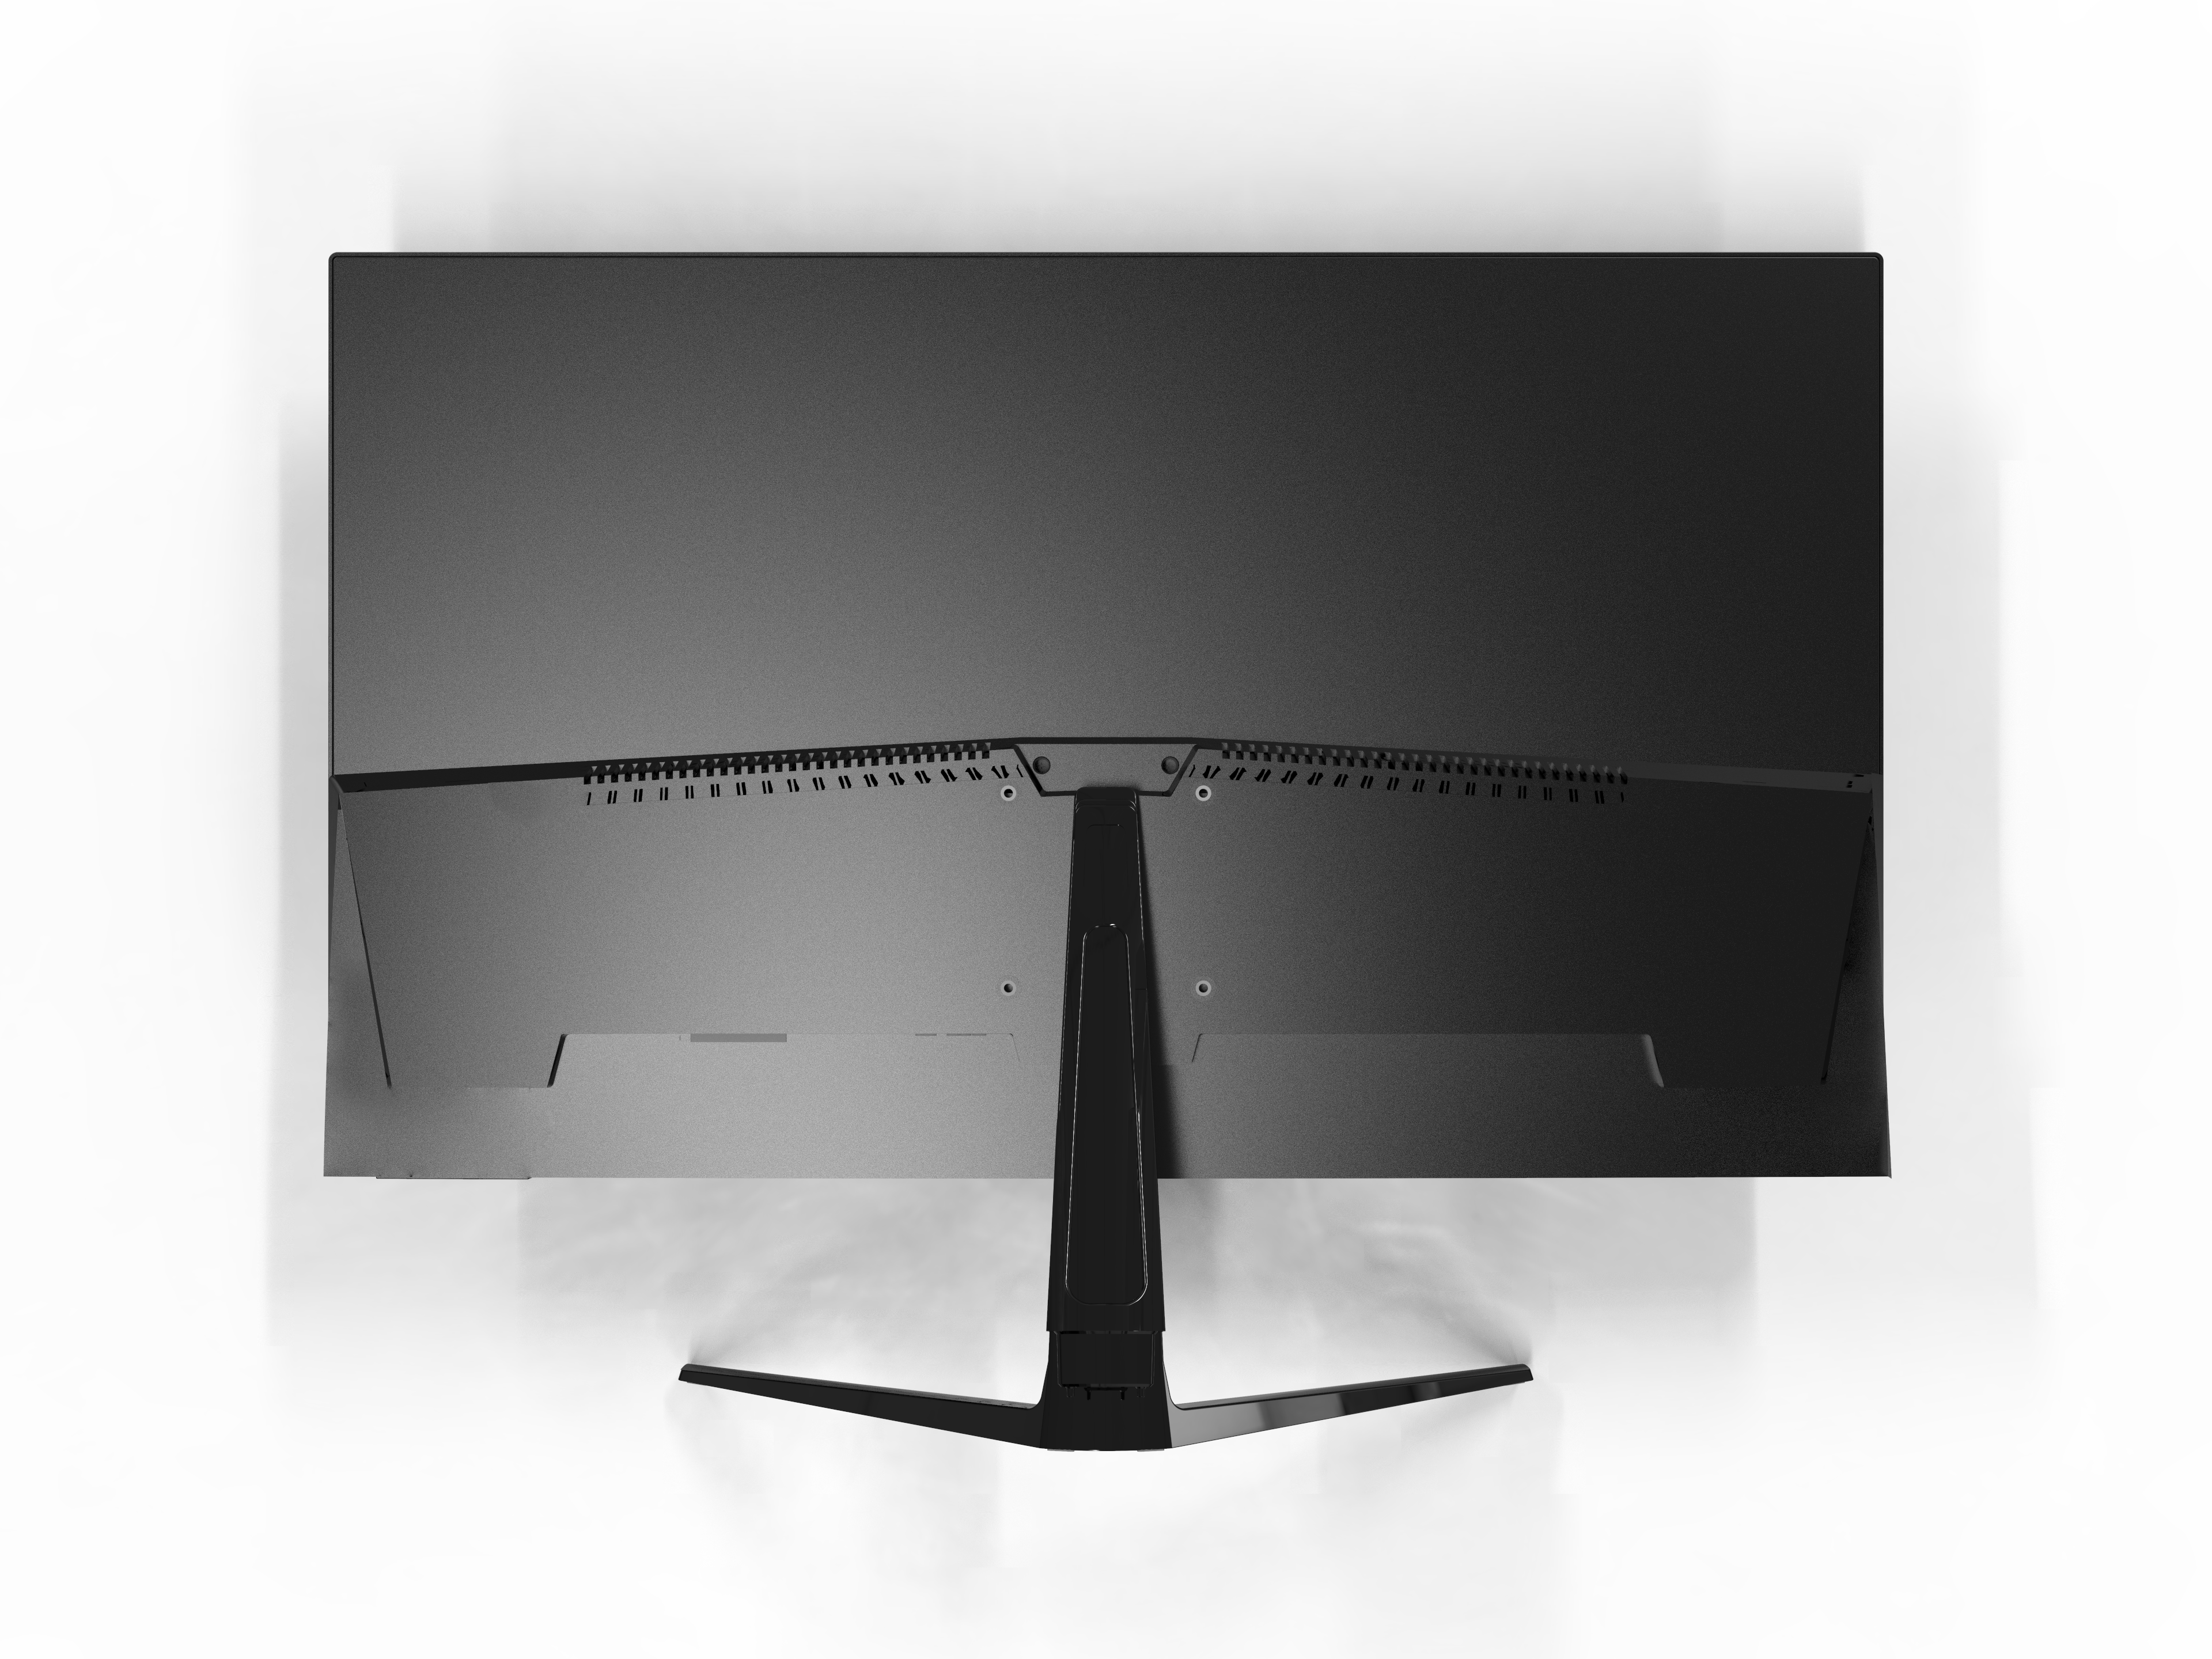 Factory making Curved Monitor Setup - Model: PM25B-F165Hz – Perfect Display